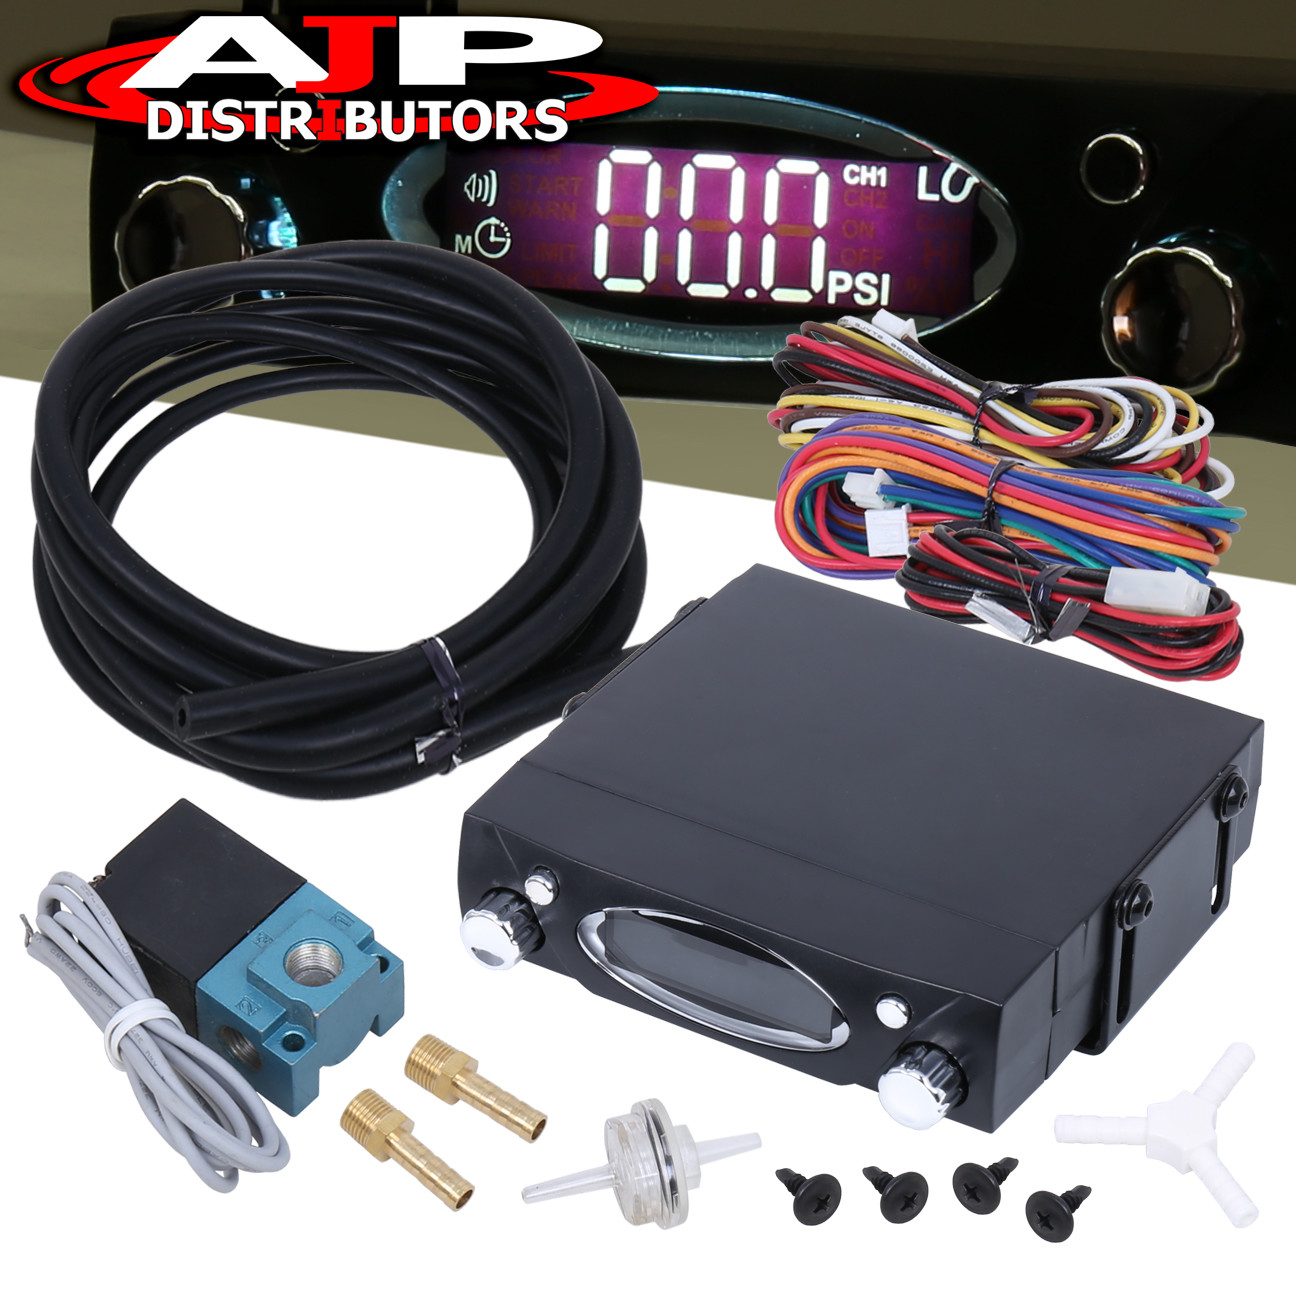 Universal Electric Turbo Review: UNIVERSAL ALLInONE ELECTRIC TURBO BOOST CONTROLLER WITH